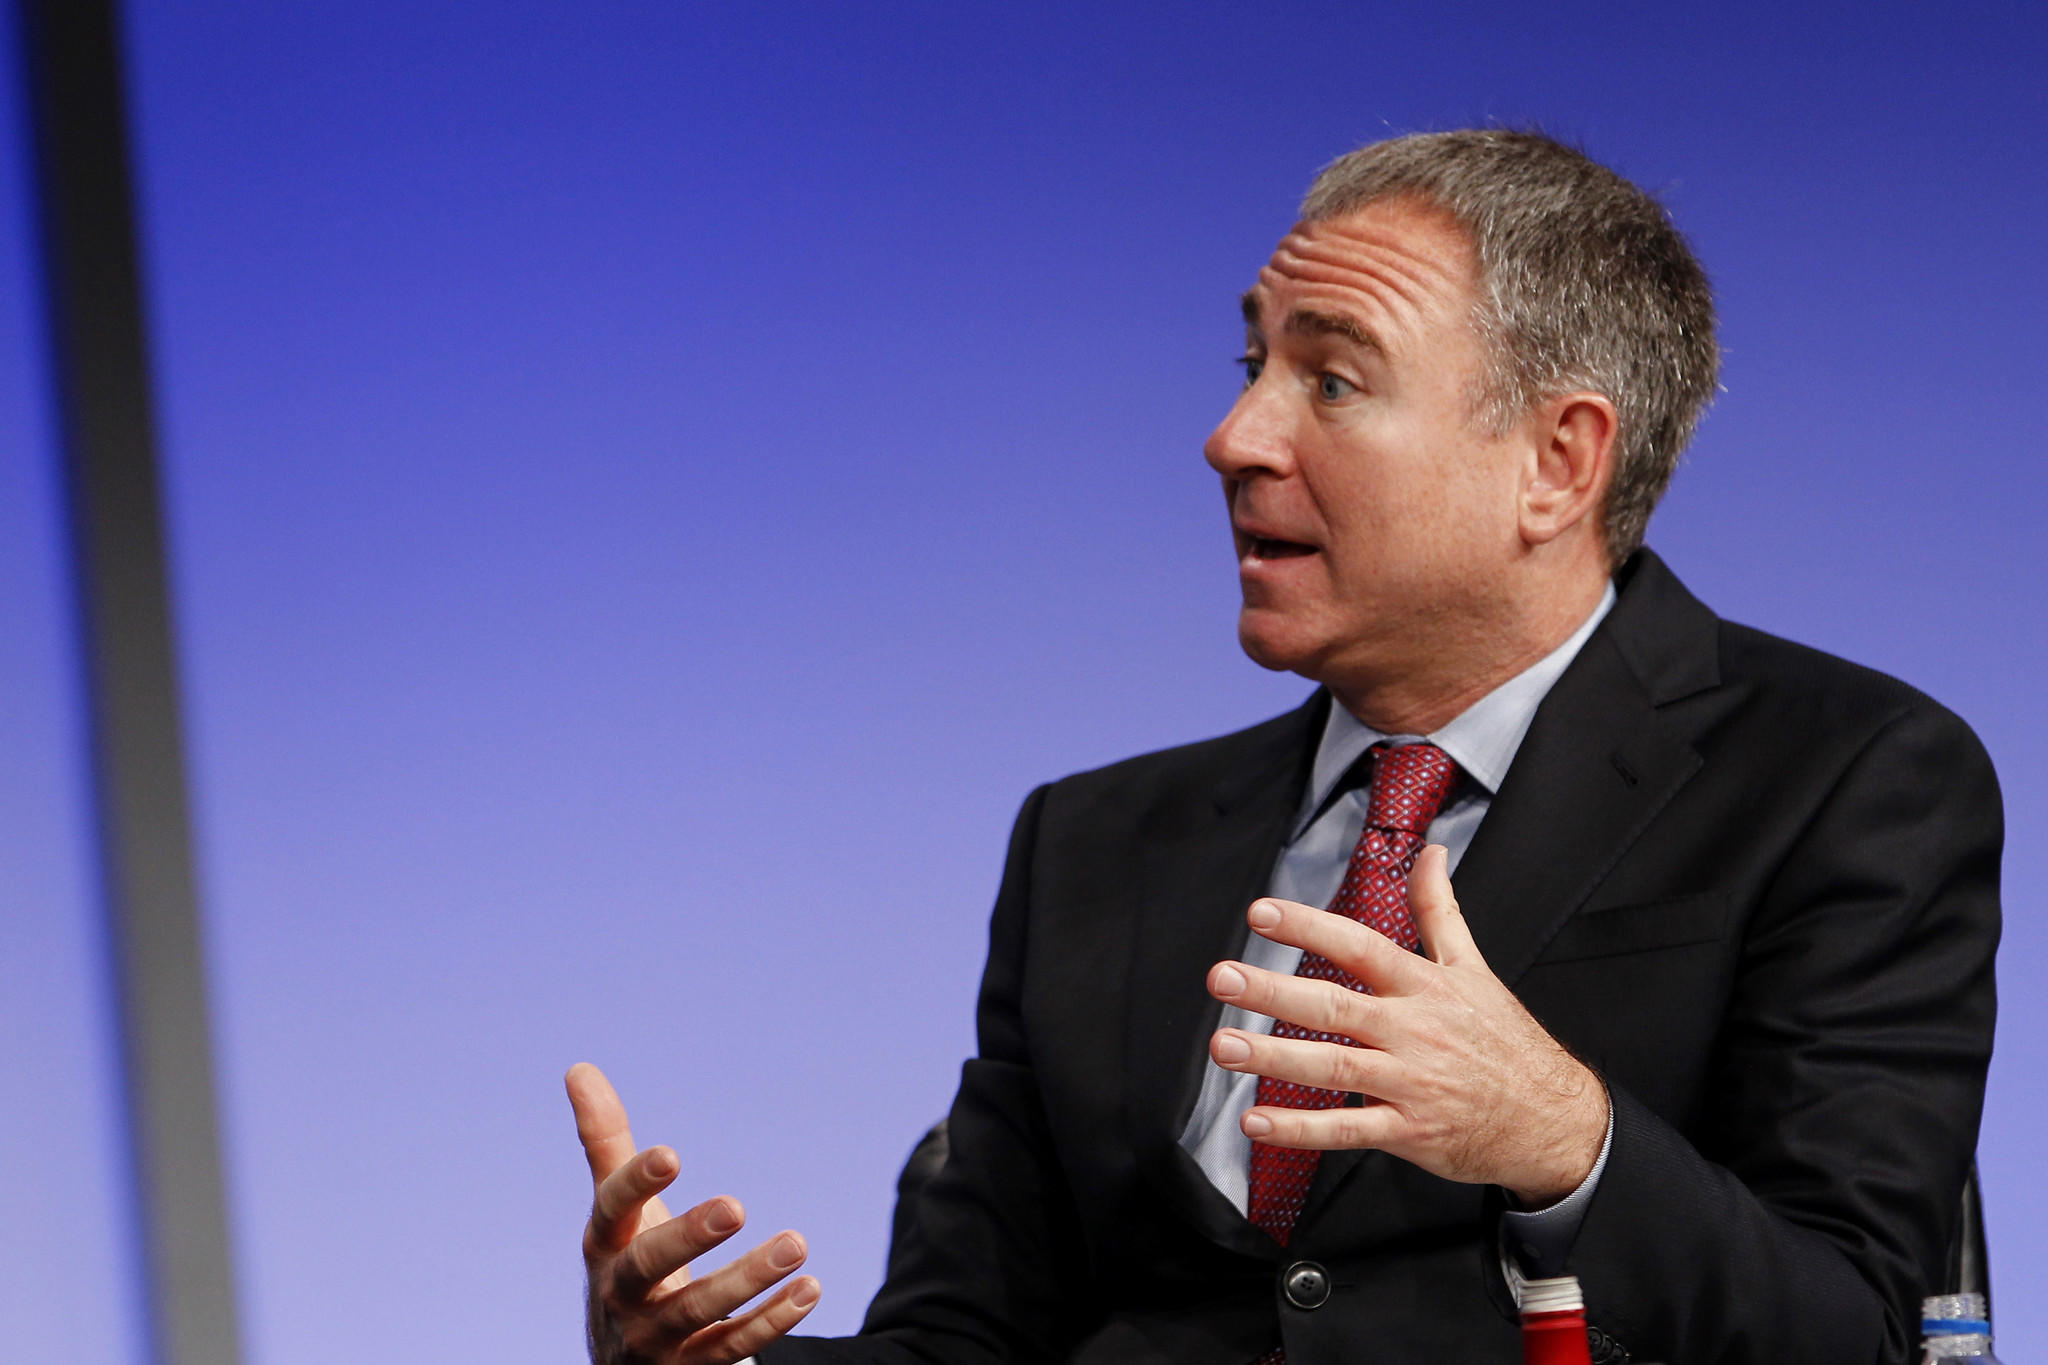 Ken Griffin speaks at the annual Milken Institute Global Conference in Beverly Hills, Calif. last April.